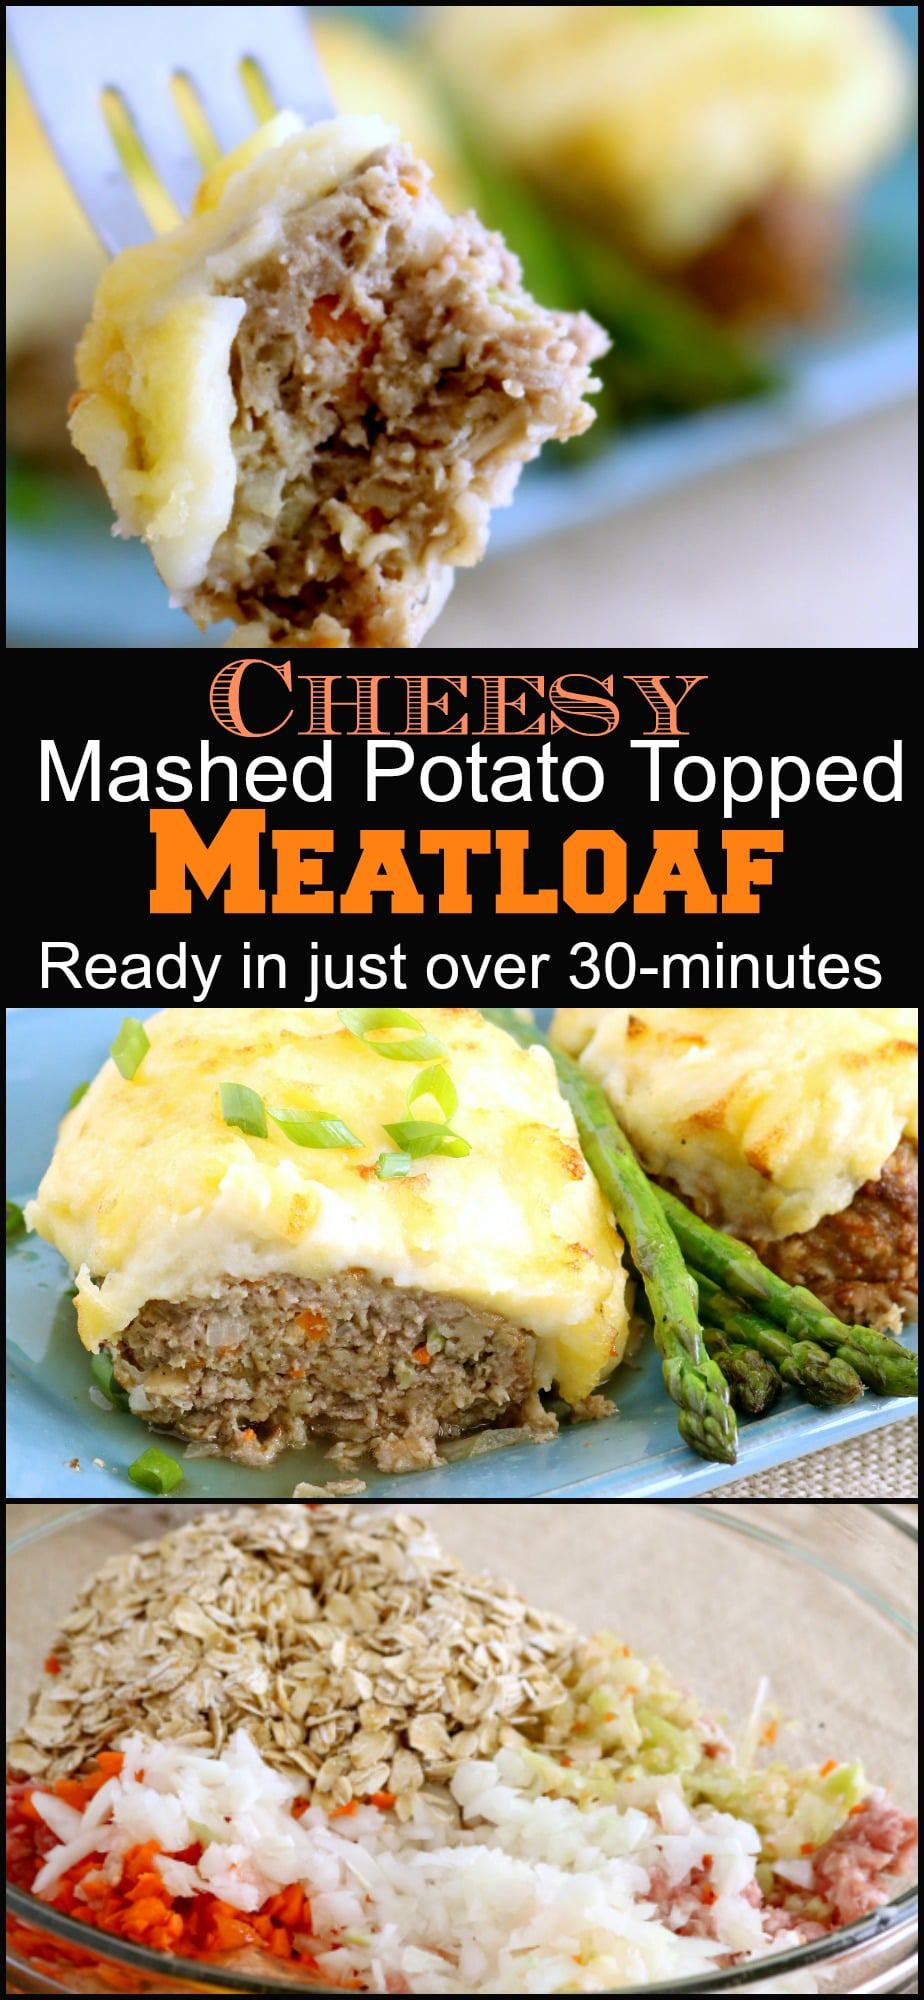 Satisfy the whole family with this kid-friendly meal. Meatloaf topped with Cheesy Mashed Potatoes is ready in just over 30-minutes.